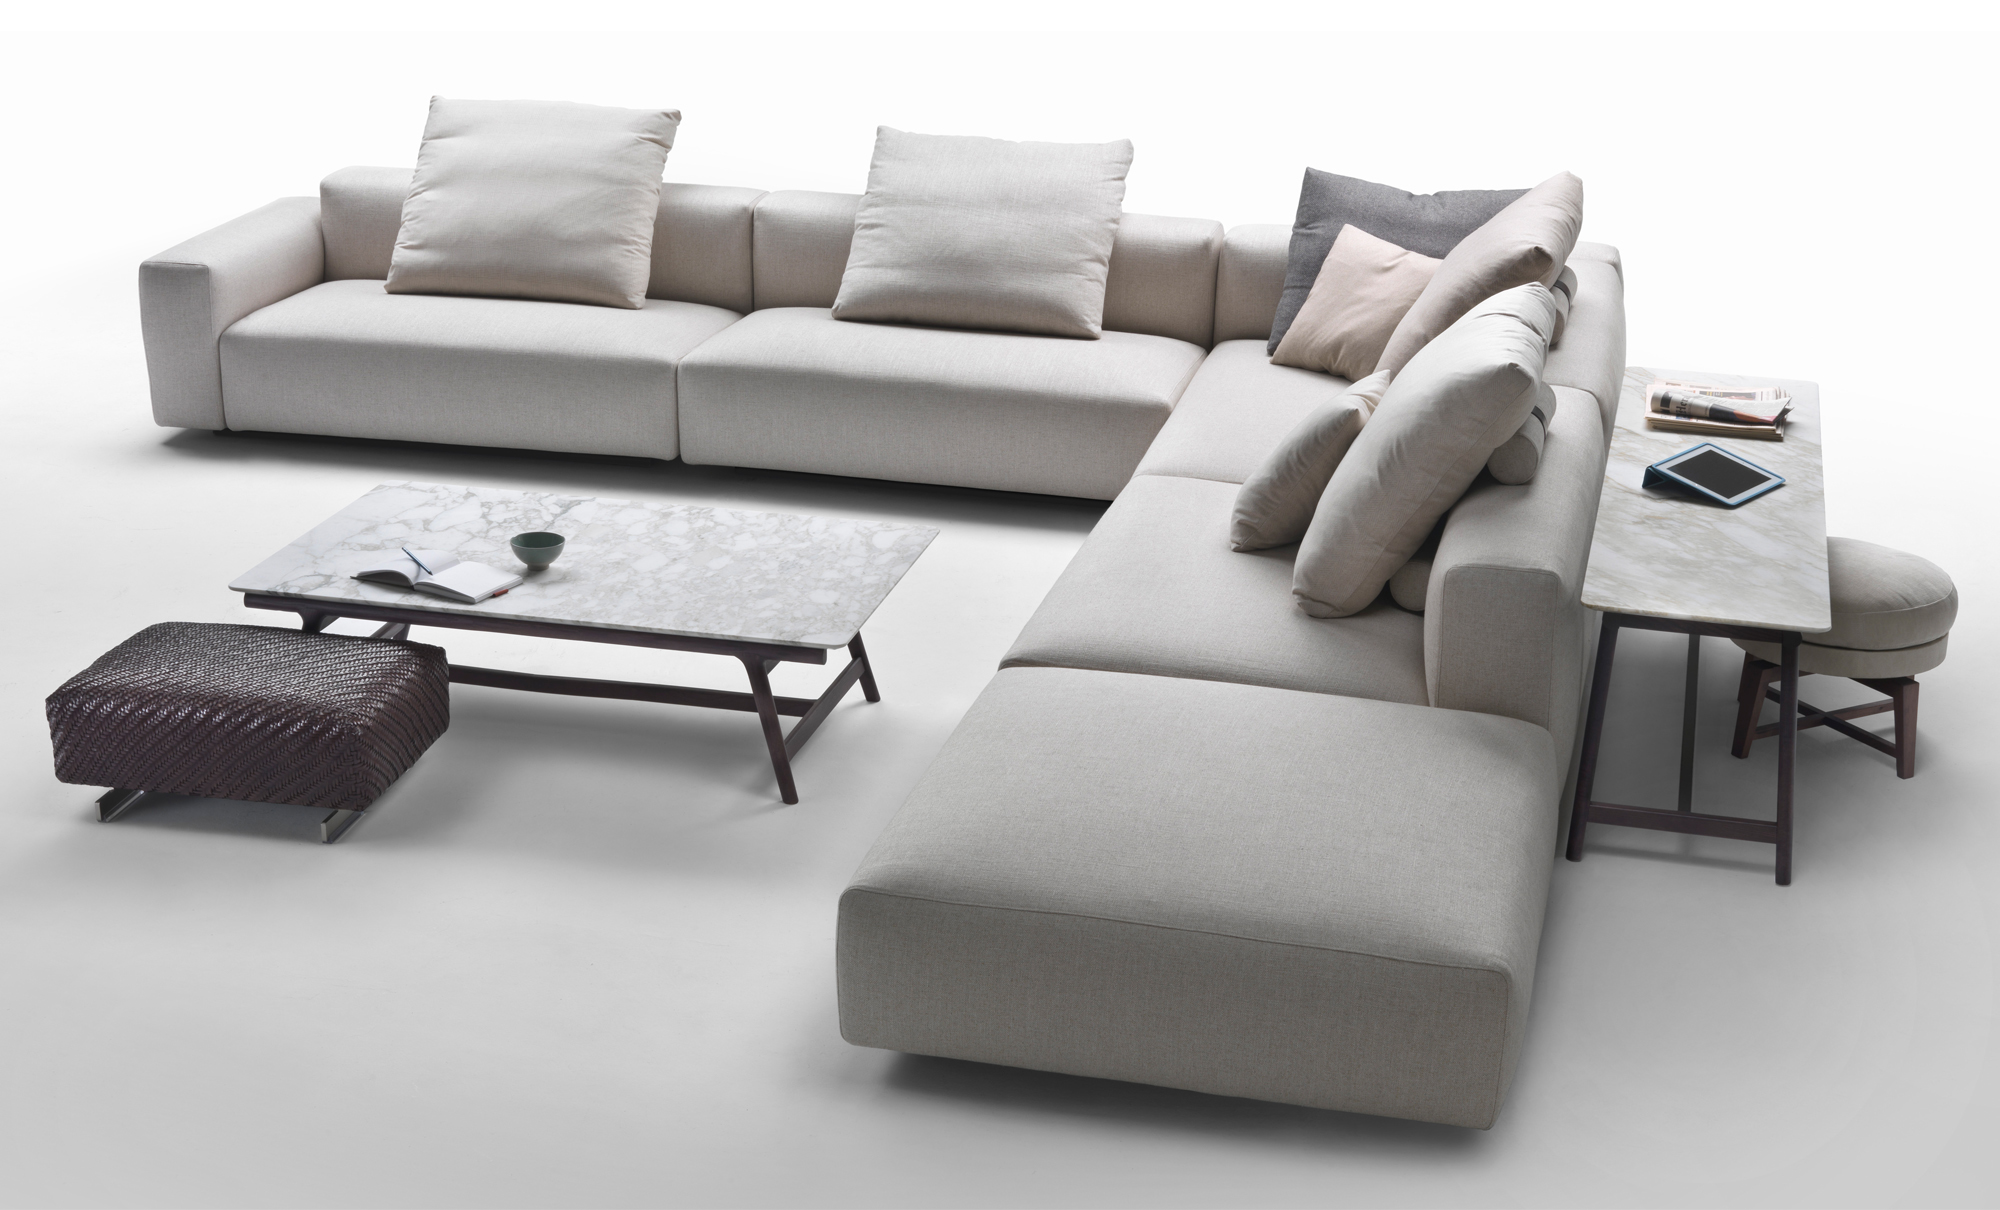 Lario modular sofa fanuli furniture for Le canape flexform